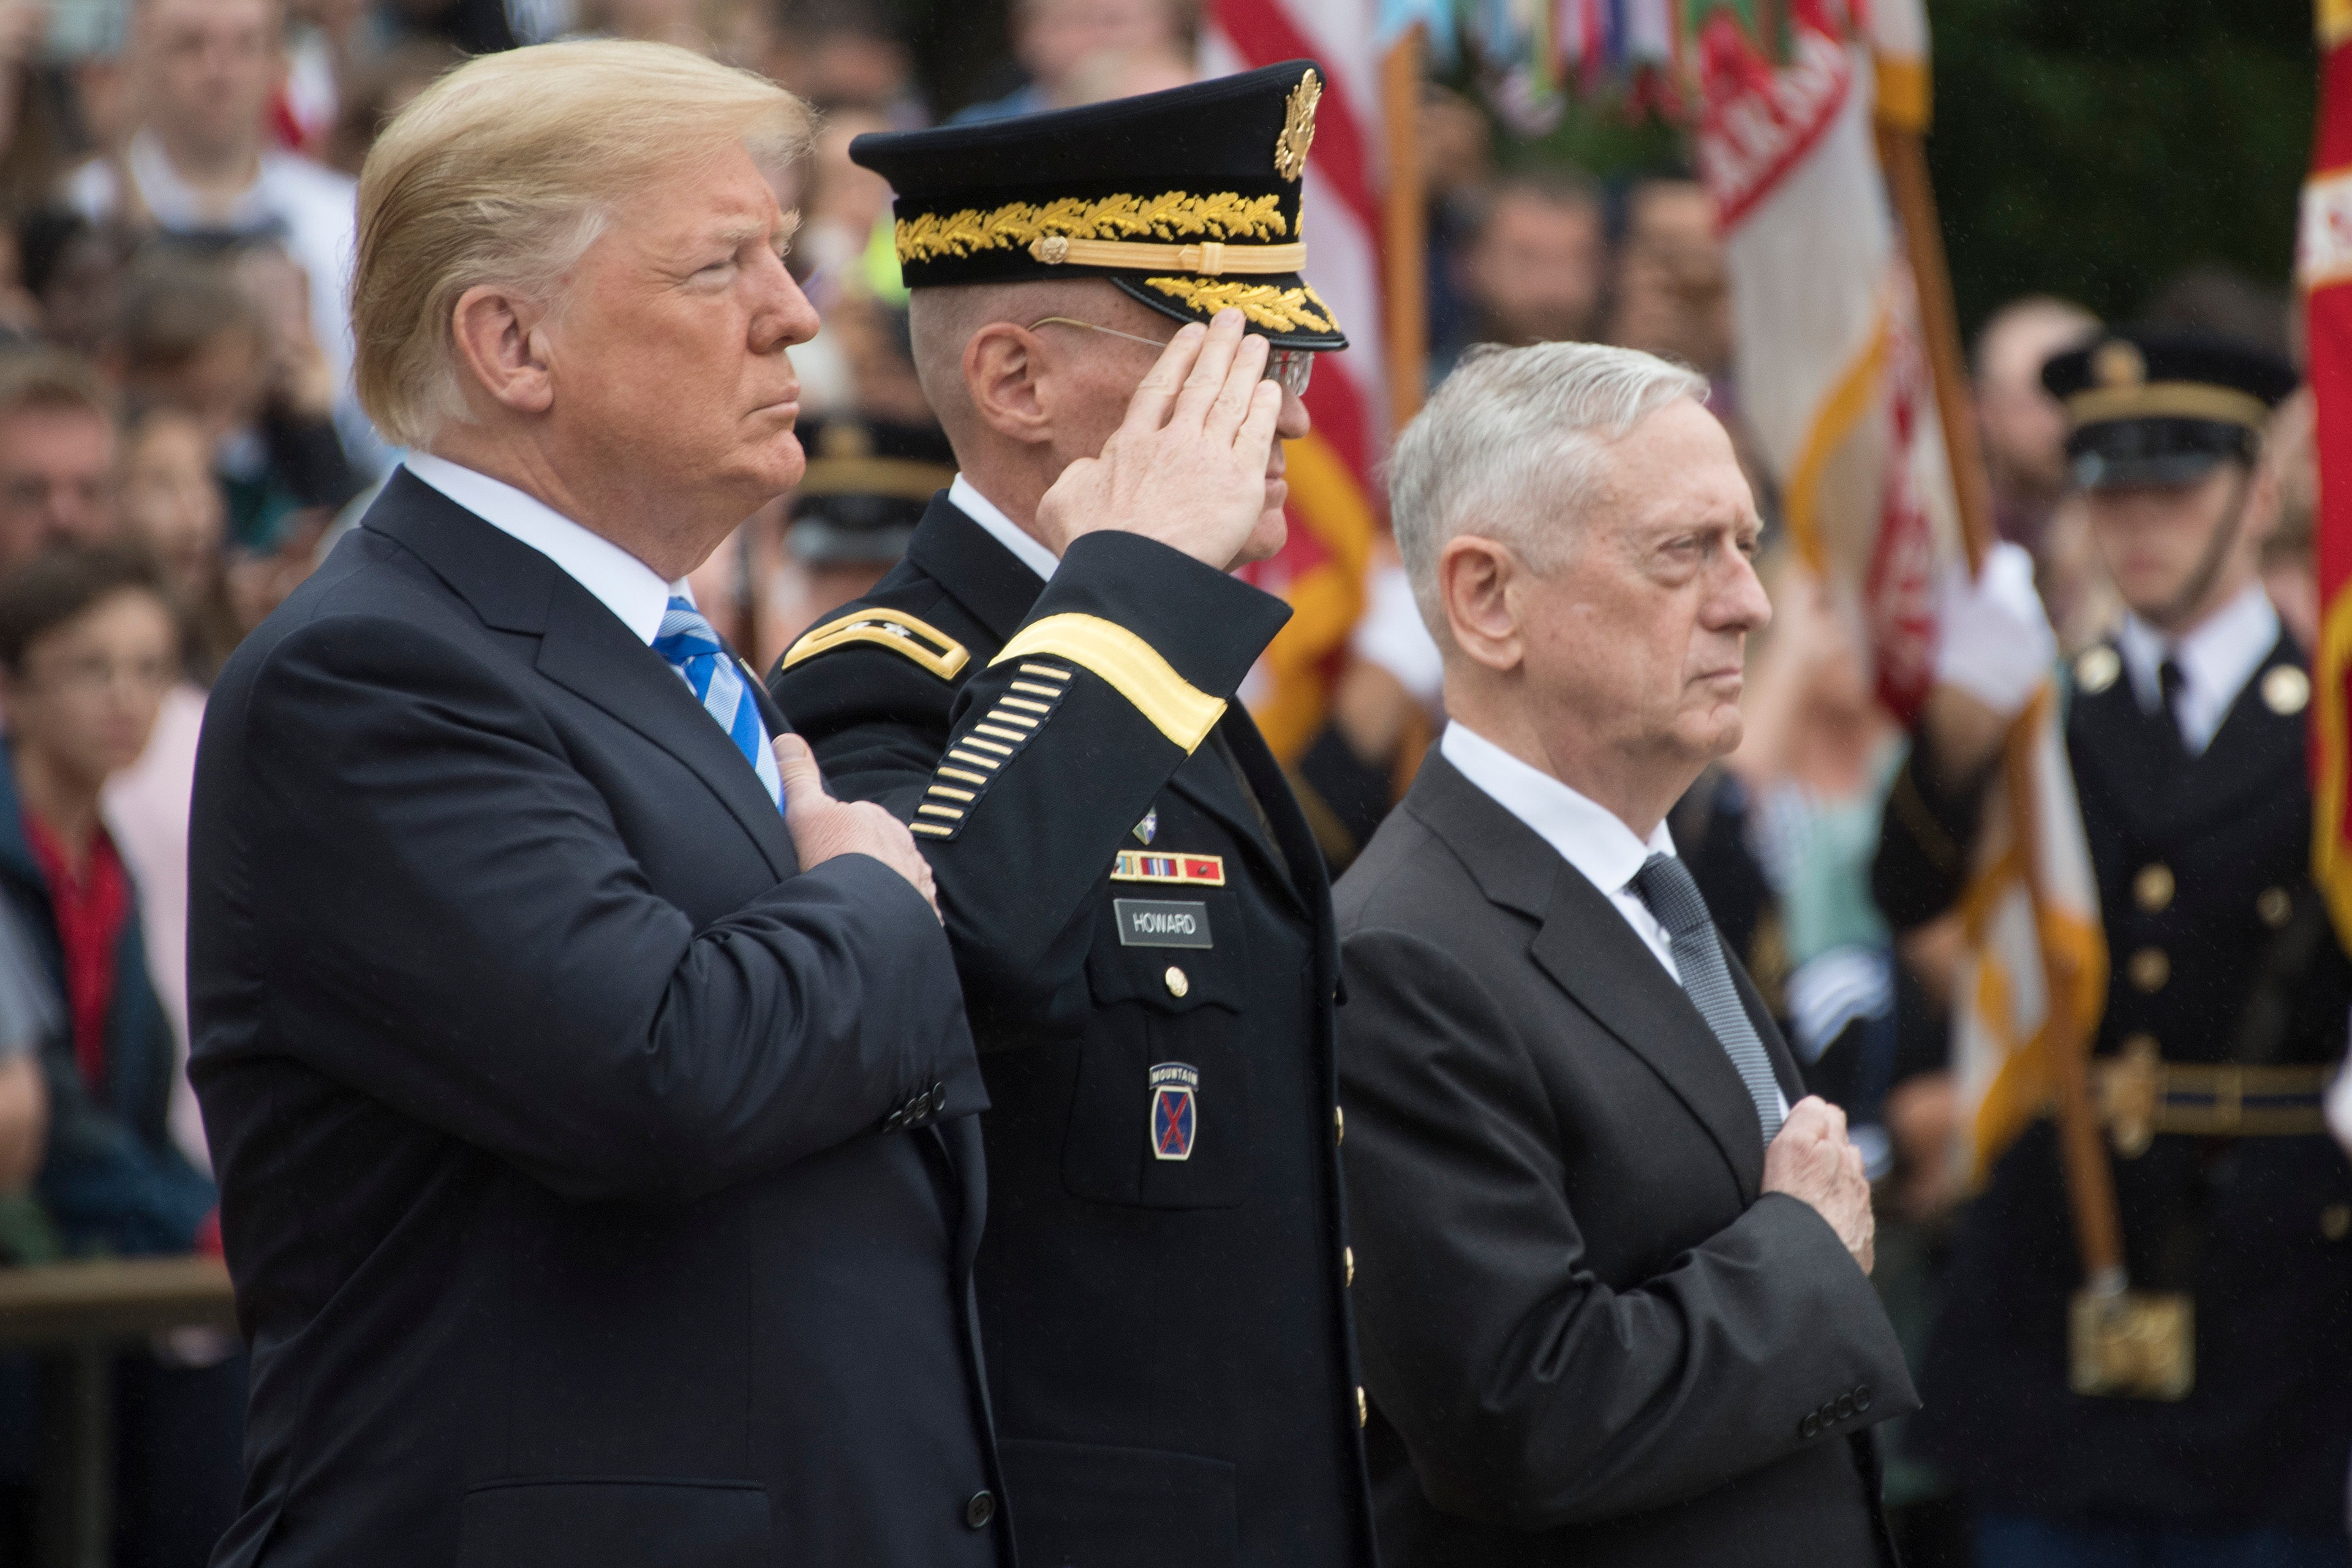 US President Donald Trump (L) and Defense Secretary Jim Mattis (3rd L) mark Memorial Day by laying a wreath at the Tomb of the Unknown Soldier at Arlington National Cemetery in Arlington, Virginia, on May 28, 2018. JIM WATSON/AFP/Getty Images